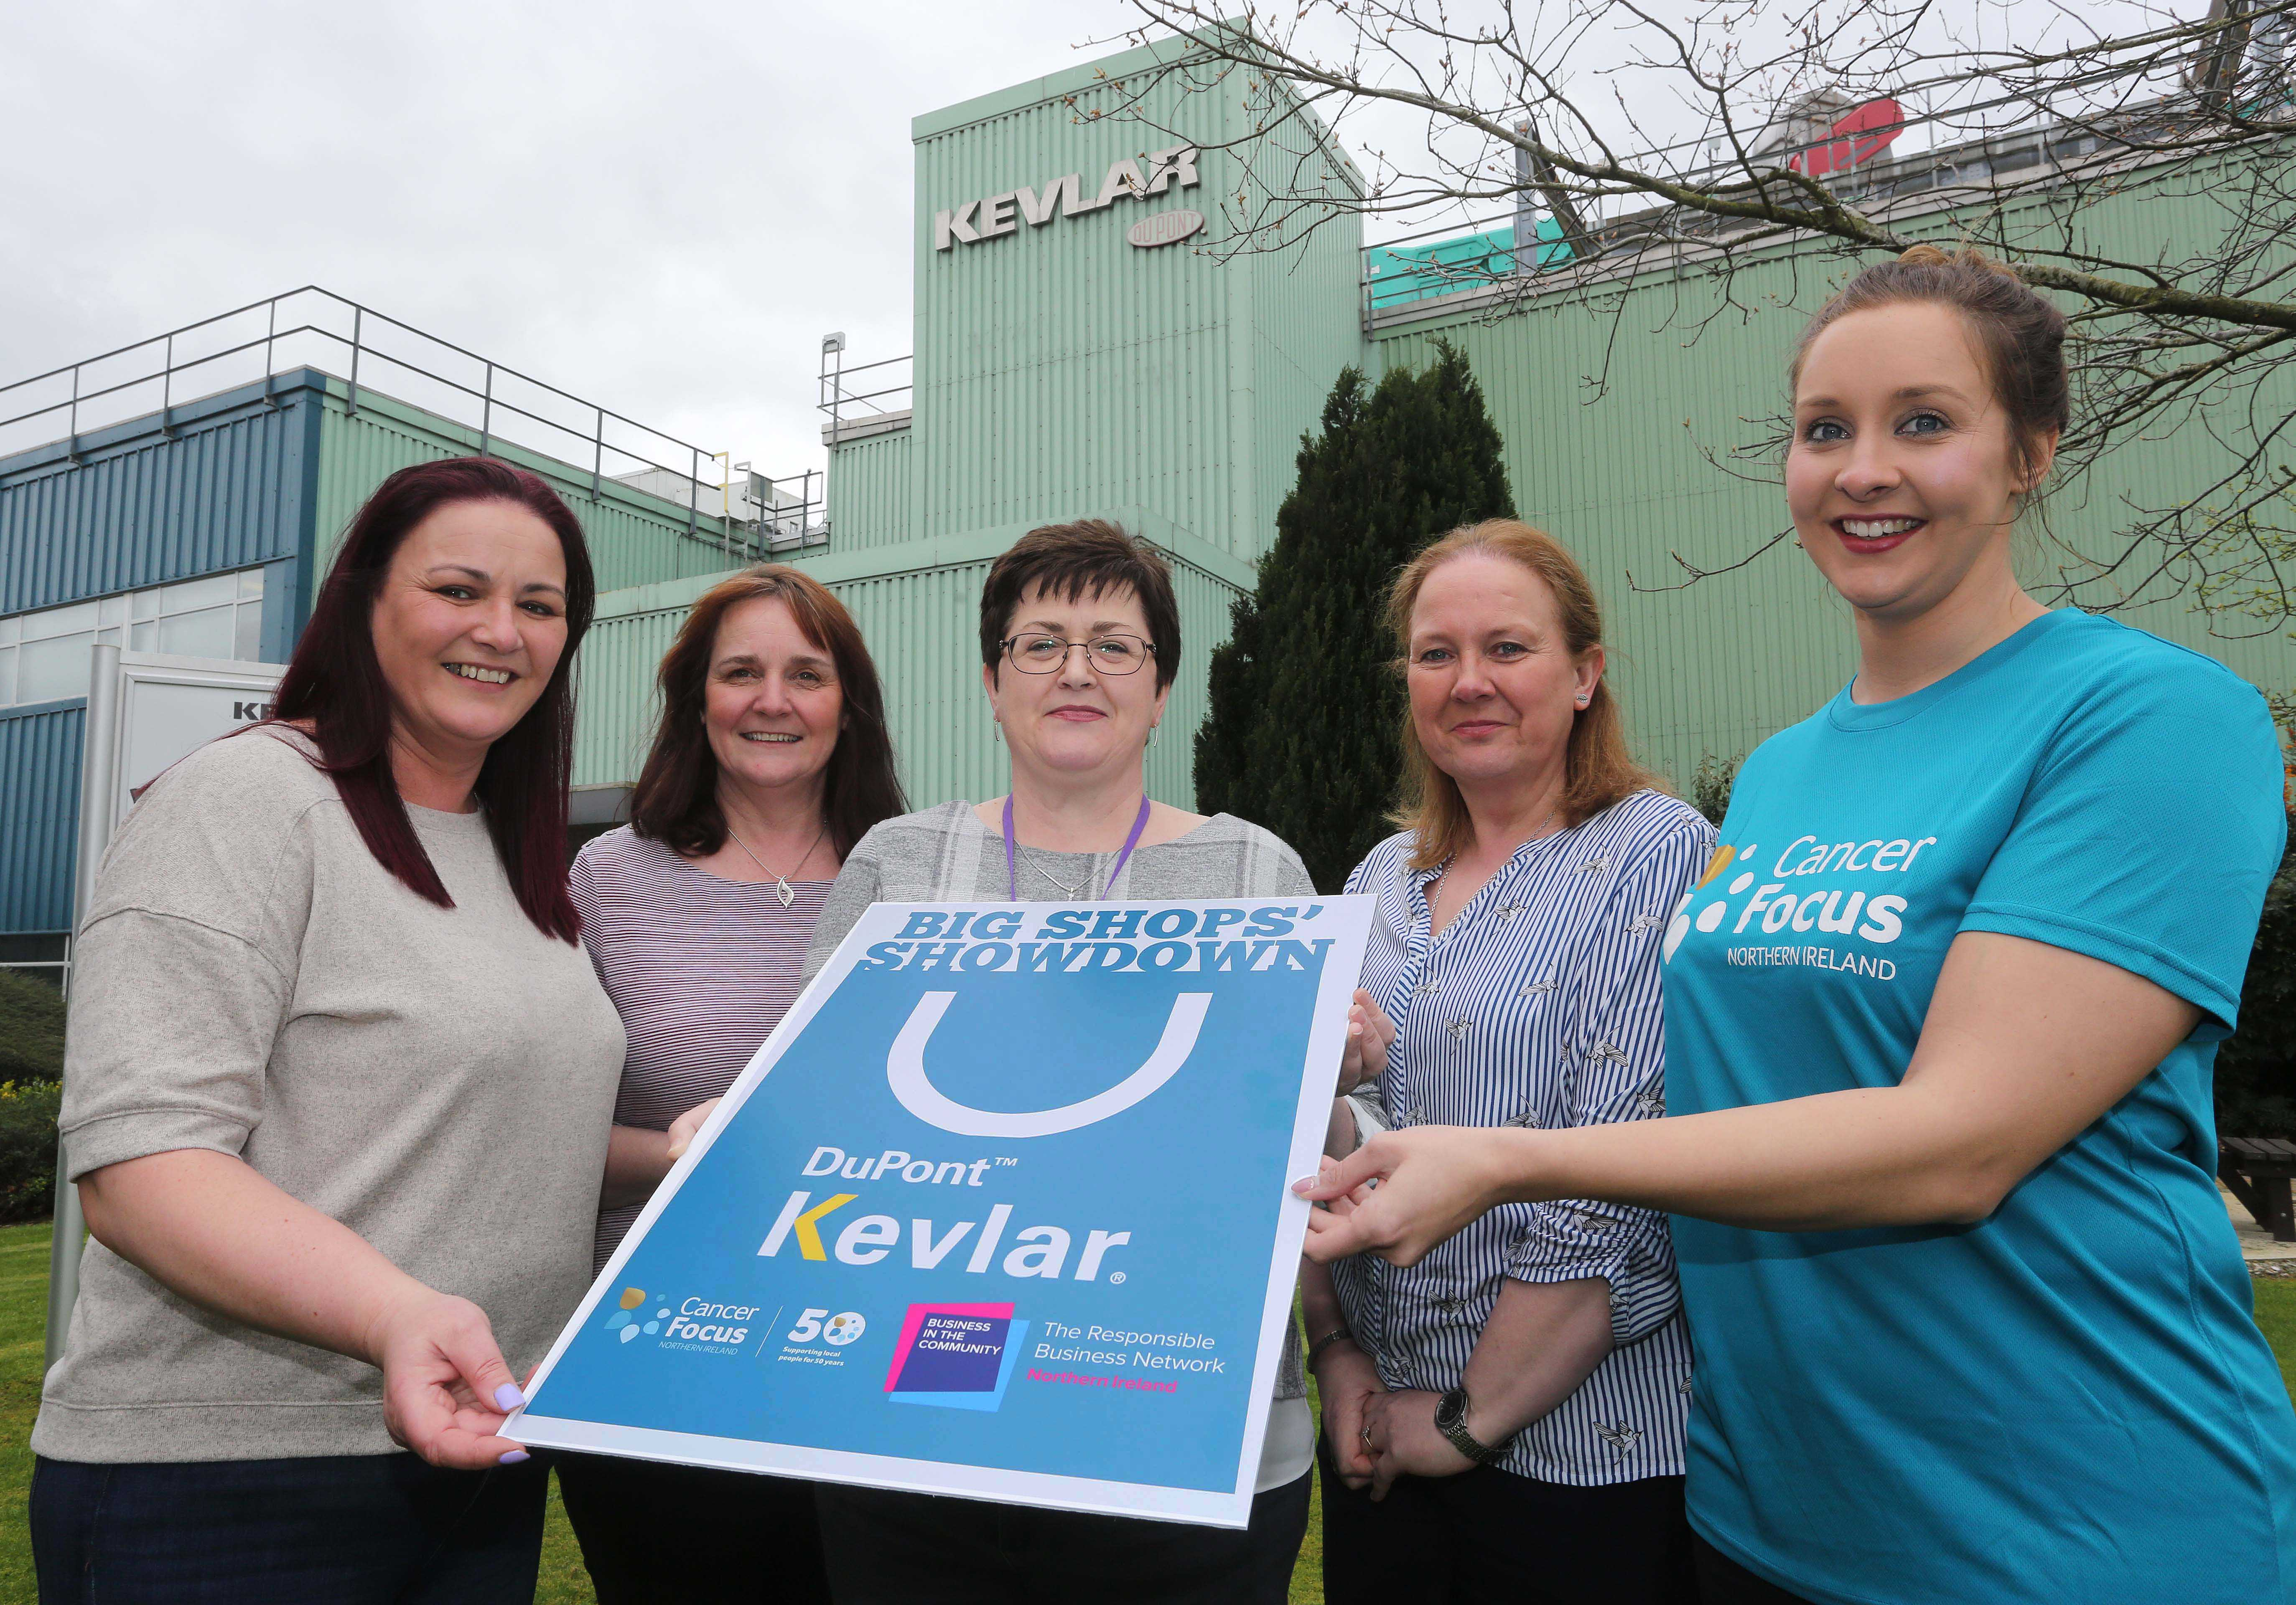 BIG SHOPS' SHOWDOWN: (L-R) Janine Geddes, Karen Dornan, Helena McGuinness, and Anita Simpson from DuPont are joined by Louise Greer from Cancer Focus NI to announce that DuPont will be swapping Maydown for Limavady for a day on Friday April 12th, when their team takes over the Cancer Focus Northern Ireland charity shop on Connell Street as part of Business in the Community's 'Big Shops' Showdown' fundraising initiative. The Big Shops' Showdown will see companies across Northern Ireland take over the running of a Cancer Focus shop for the day, and compete against each other to raise as much cash as possible for the charity. Maydown-based DuPont has been getting creative in their fundraising; organising coffee mornings, a quiz and planning activities for the Limavady shop on the day. Their team has big plans to get people involved, and are encouraging everyone in the area to pop into the Cancer Focus NI store between 10am-4pm on Friday April 12 to help support the local charity.